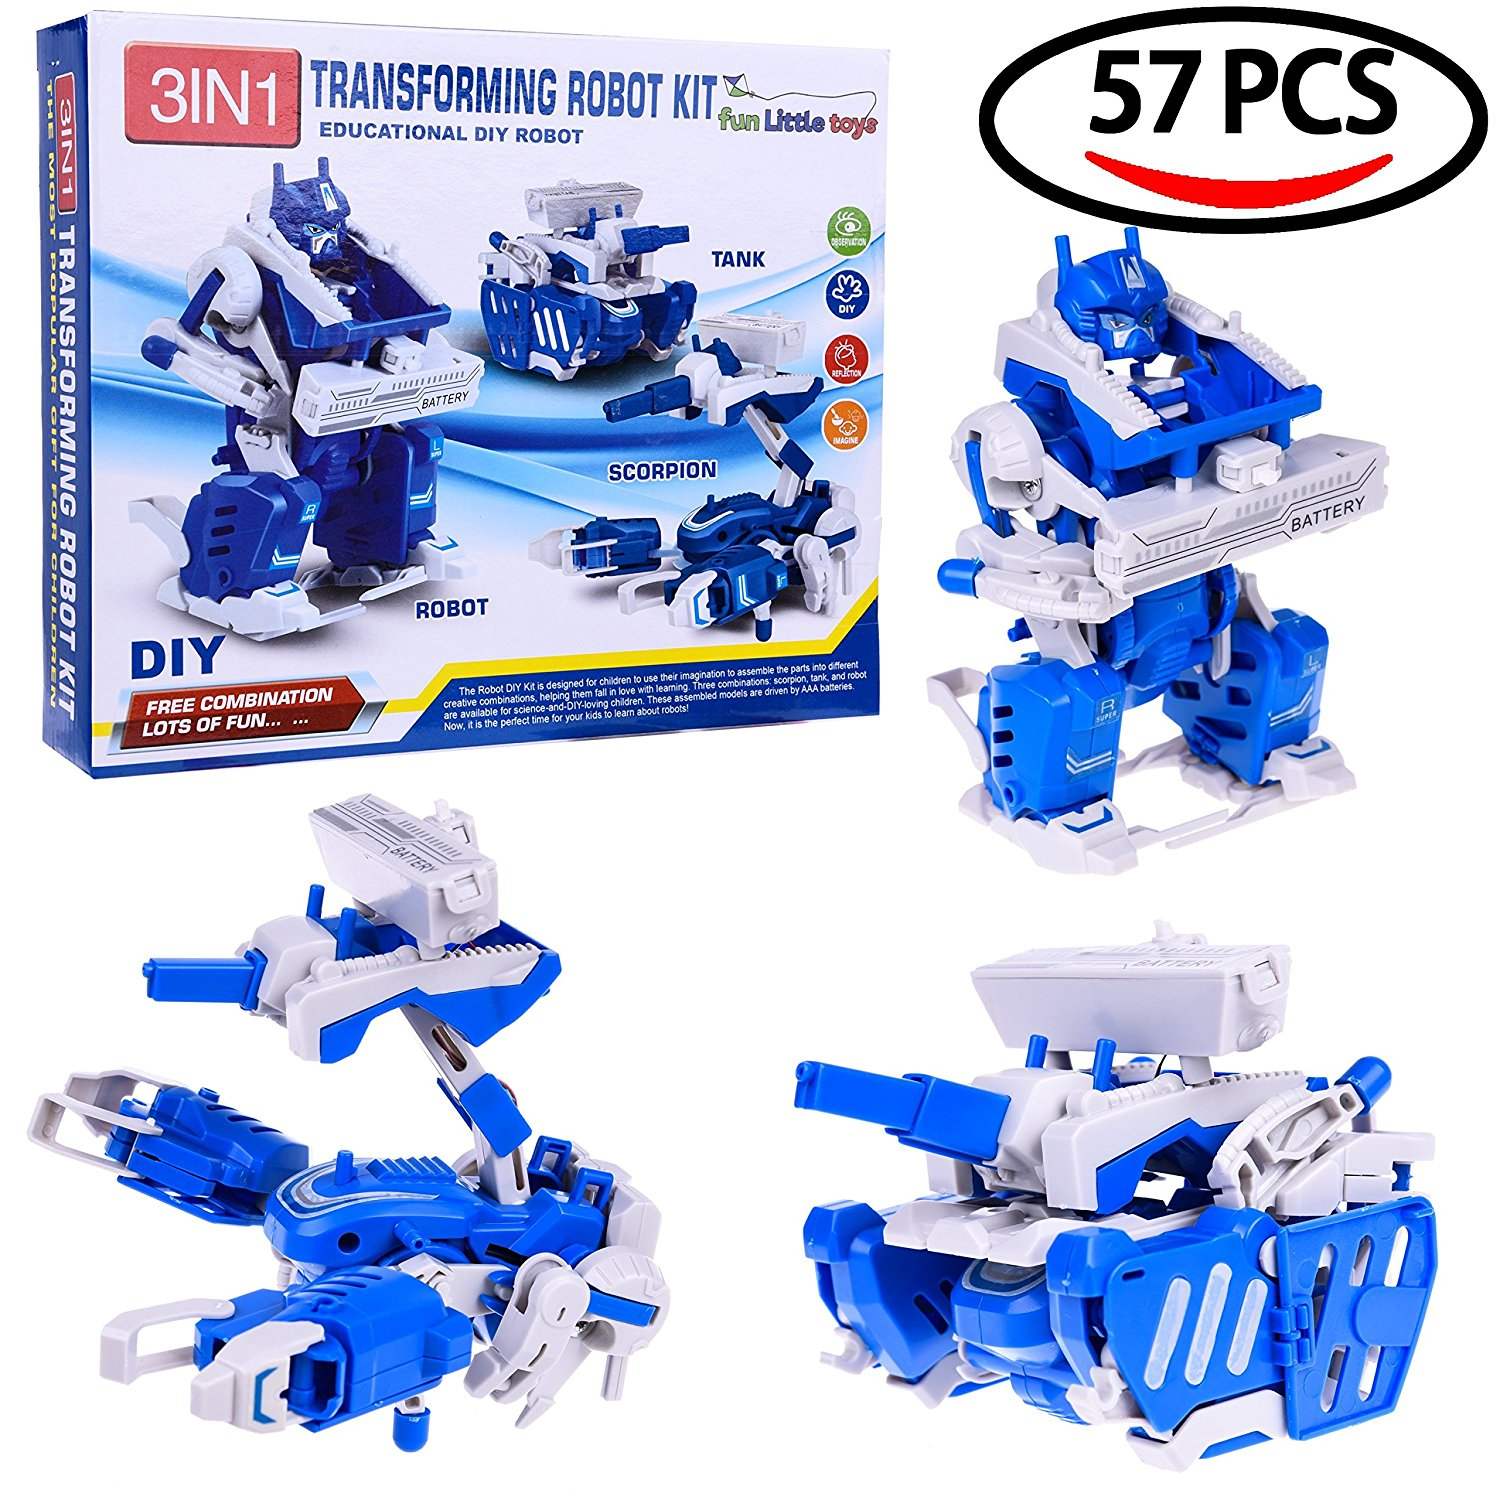 Take Apart DIY Robot Kit Engineering Building Stem Electric Assembly  Mechanics Robot, Tank, Scorpion Play Set - 57 pcs F-173